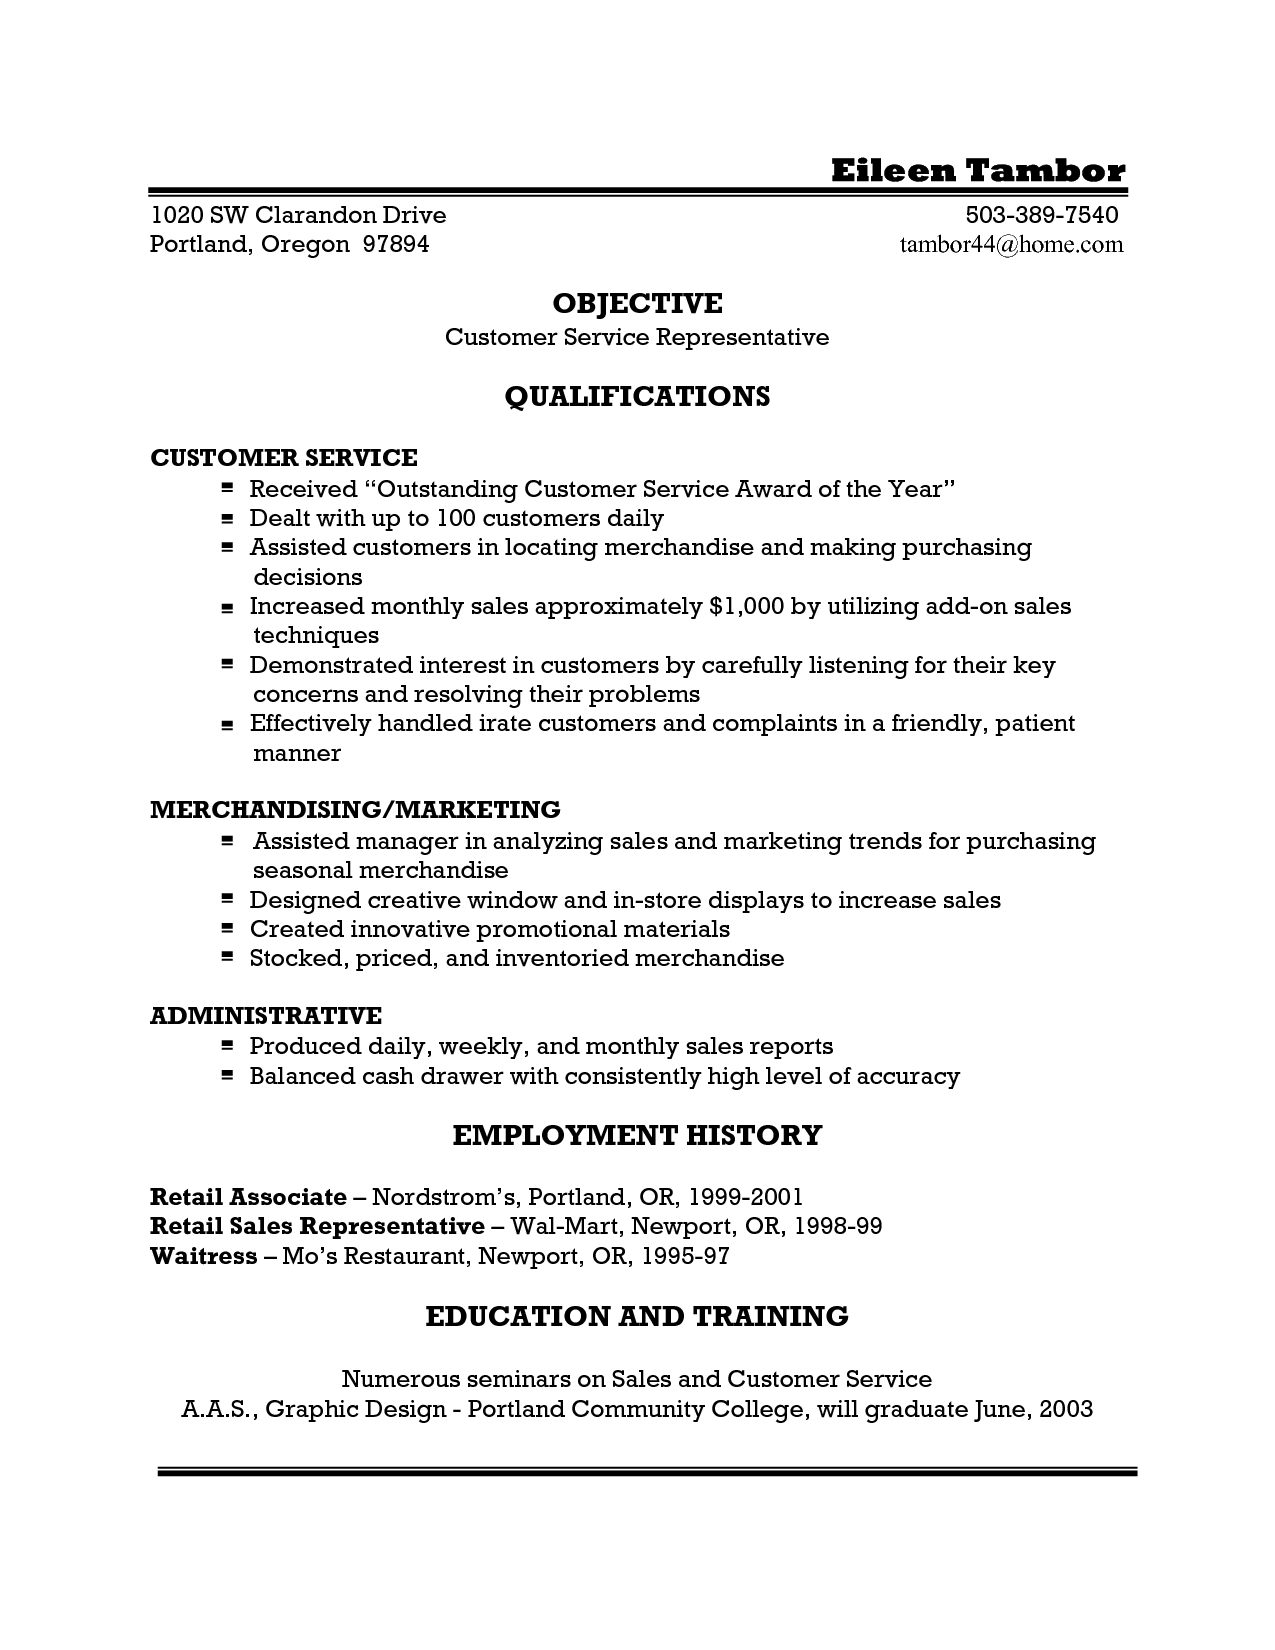 Waitress resume example template for doc server samples jpc job waitress resume example template for doc server samples jpc job description altavistaventures Gallery